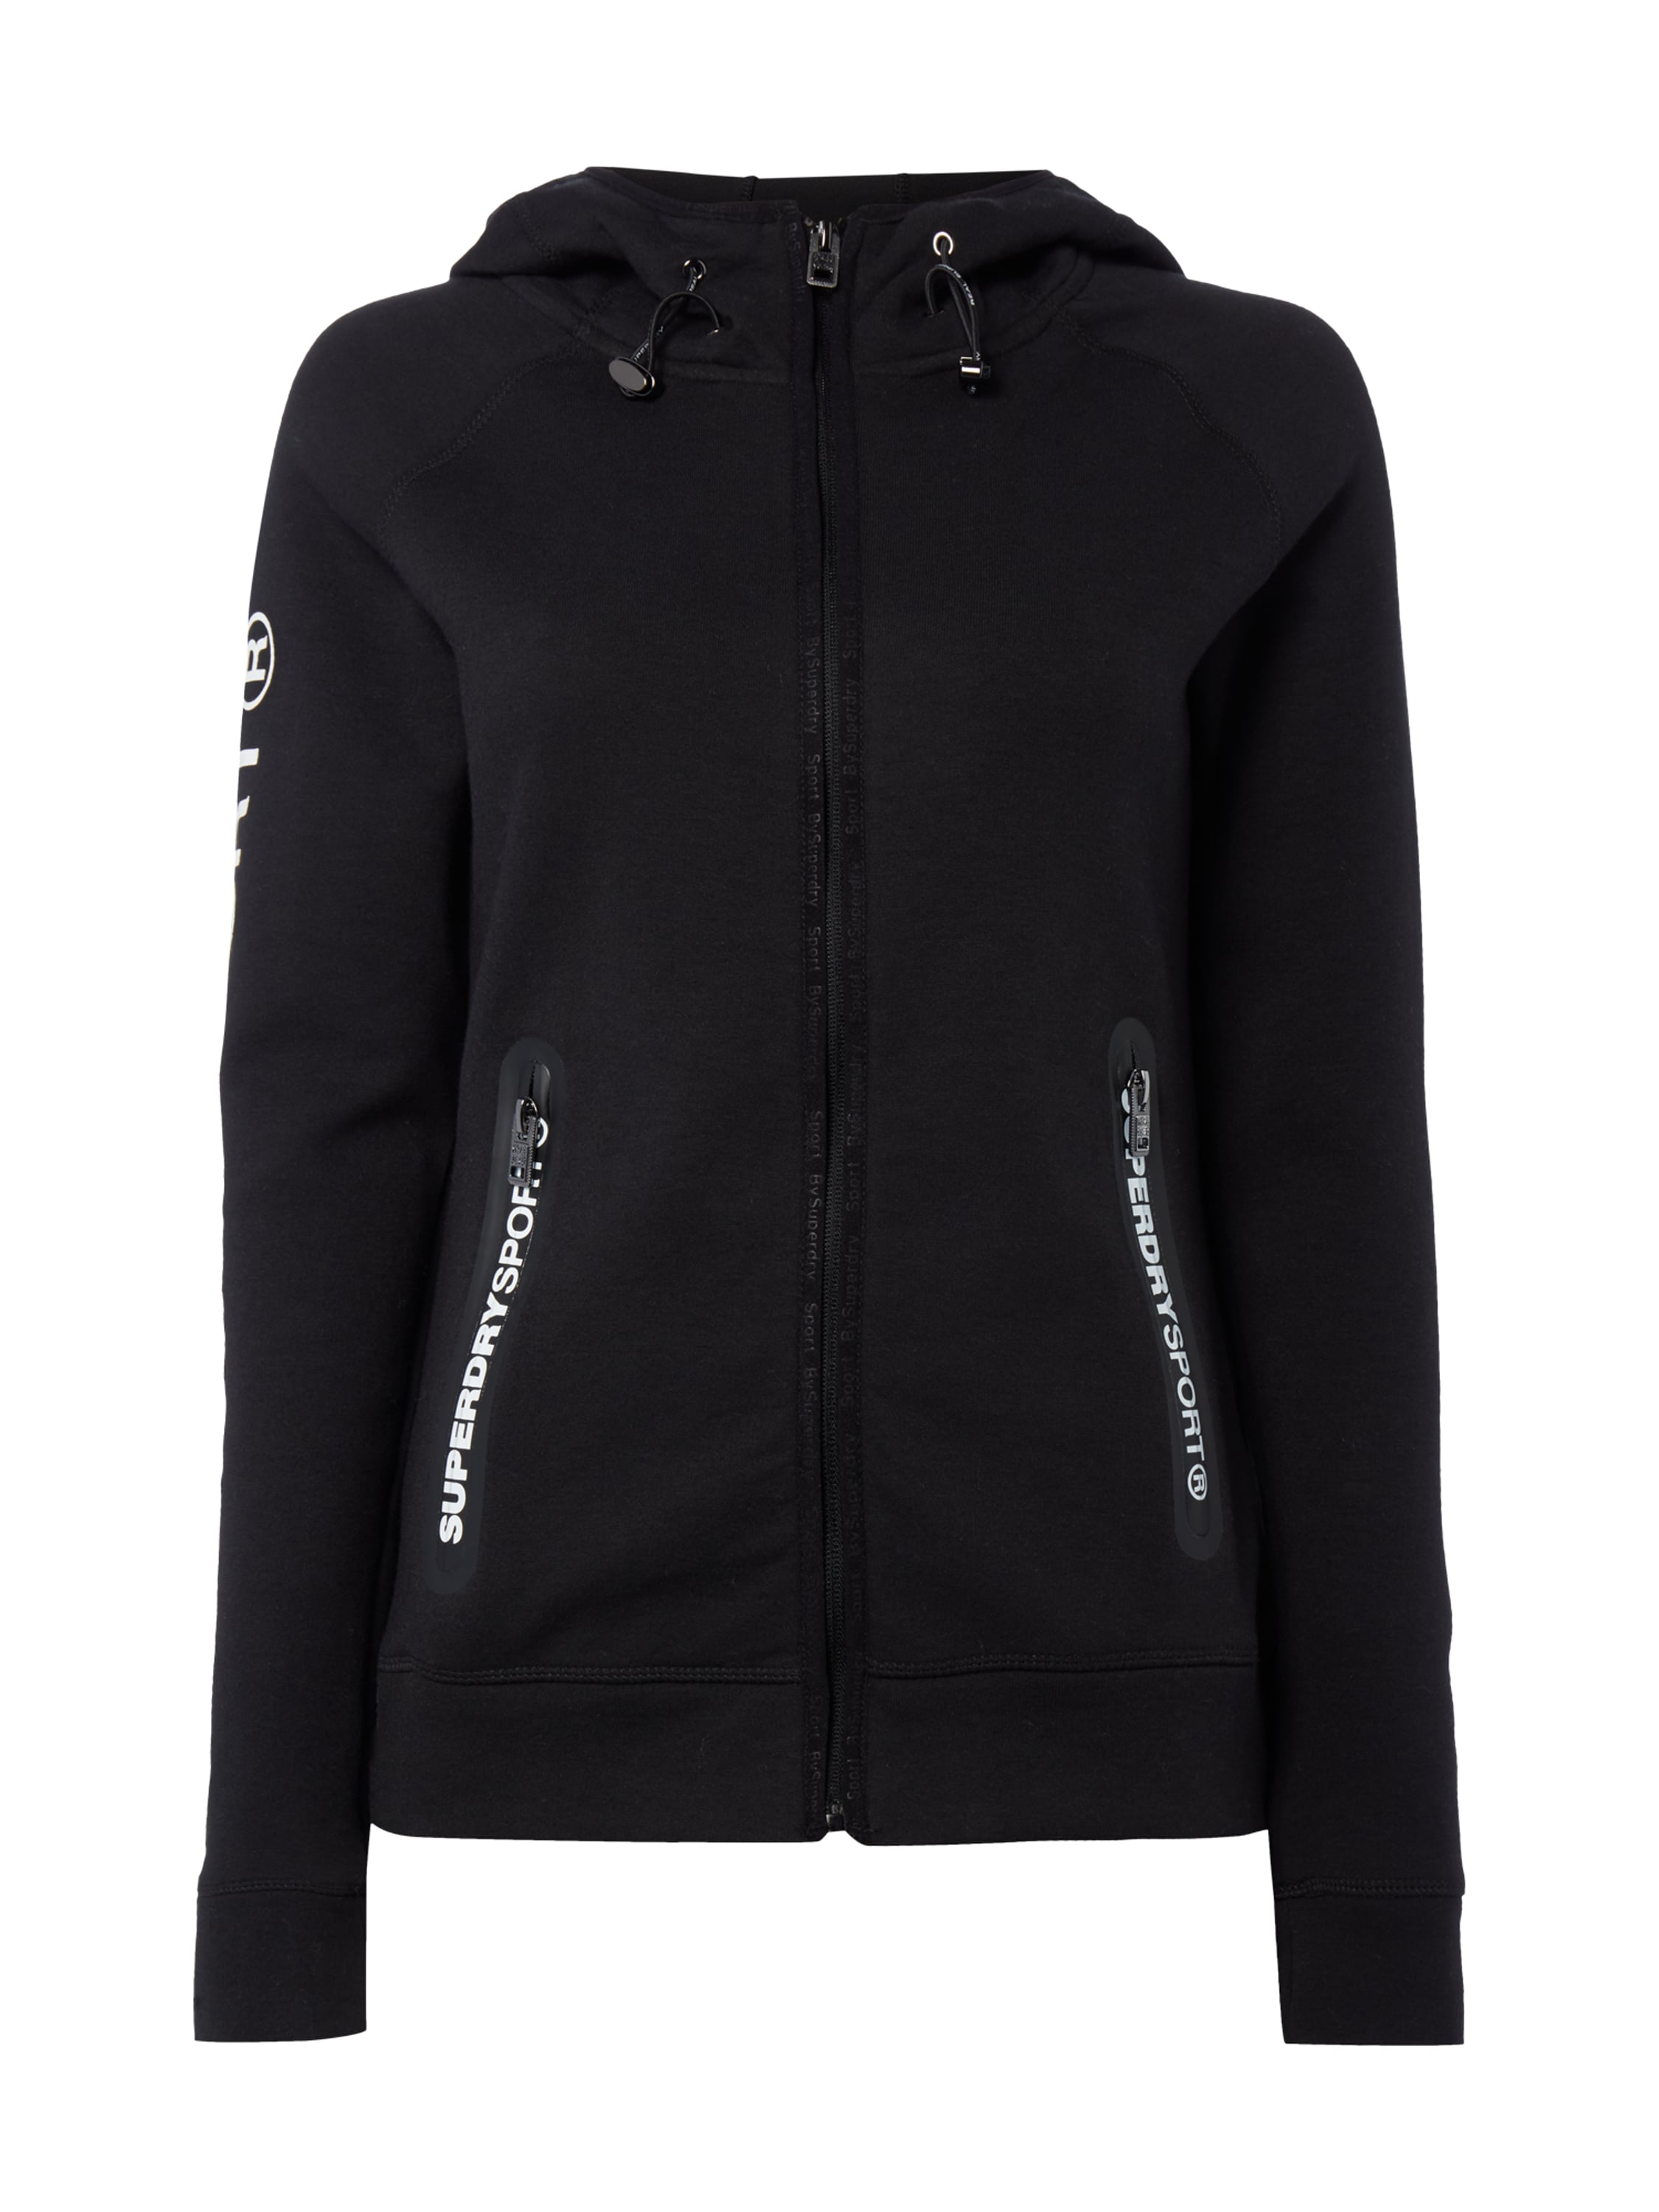 superdry sweatjacke mit kapuze in grau schwarz online kaufen 9505164 p c online shop. Black Bedroom Furniture Sets. Home Design Ideas